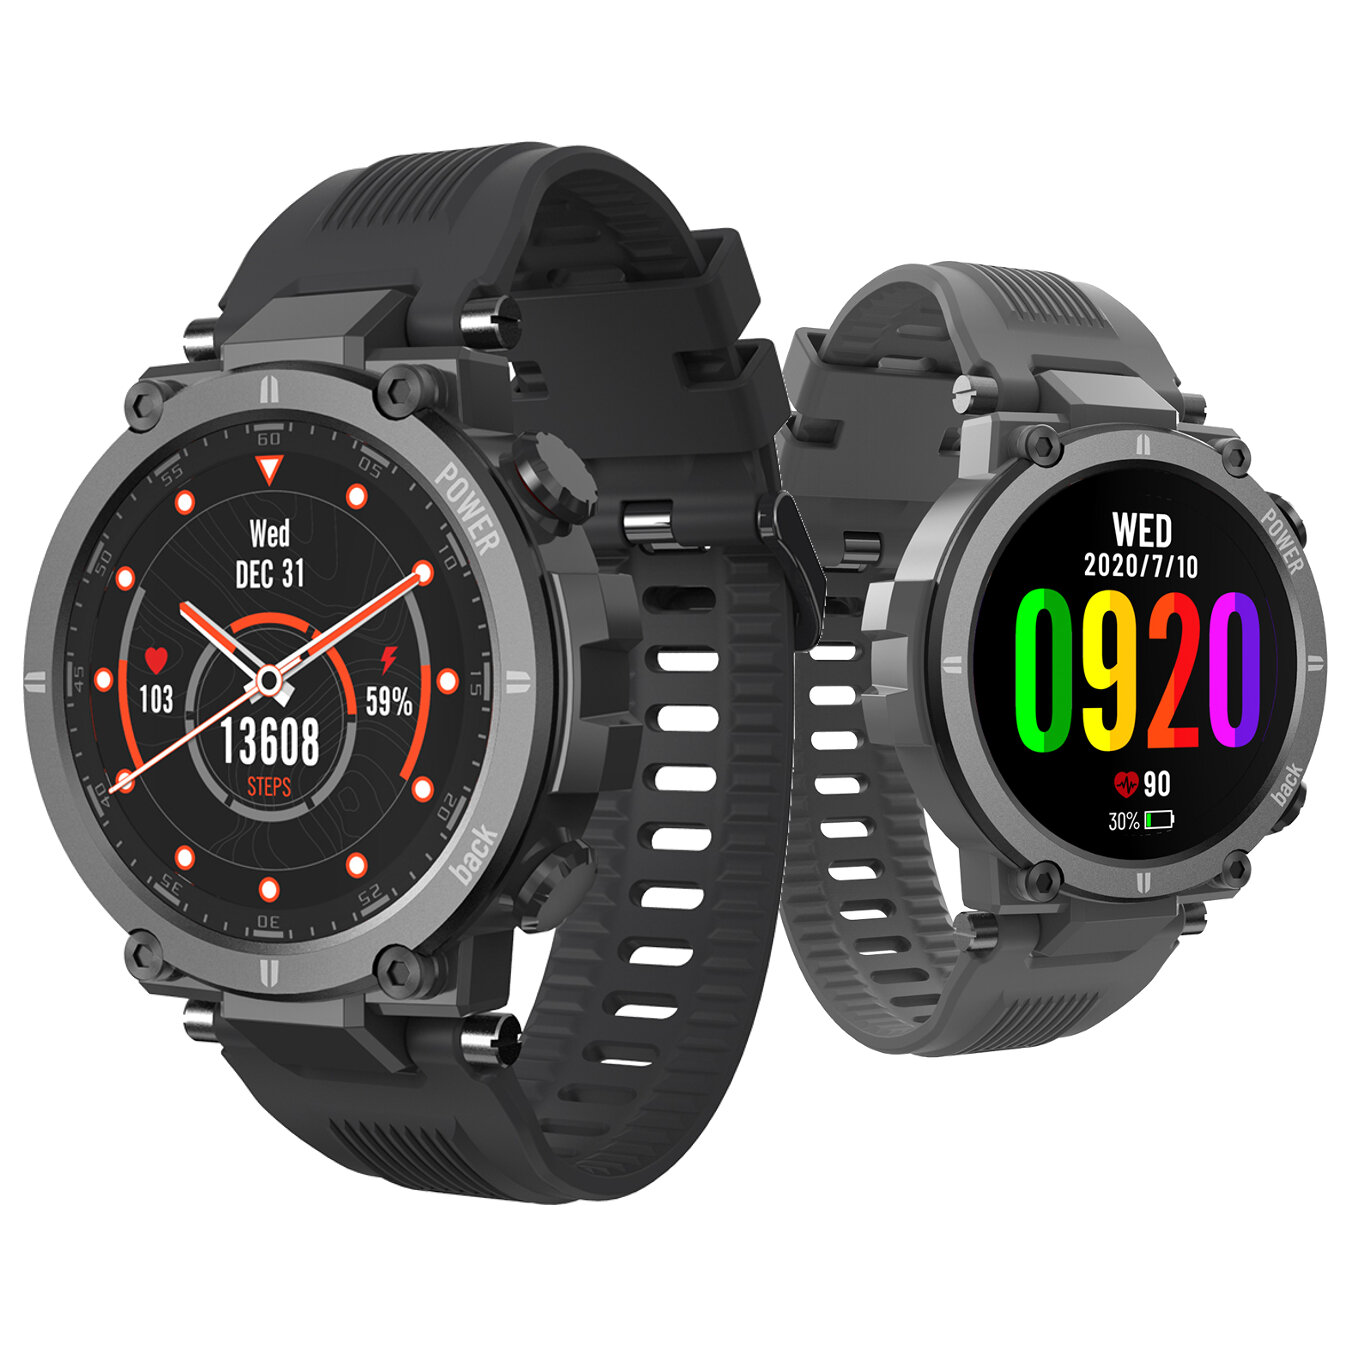 20 Sport ModesKospet Raptor 320+320px Full Touch Rugged Screen 24 hour Heart Rate Monitor 30 Days Standby Multiple Creative UI IP68 Waterproof Outdoor Smart Watch